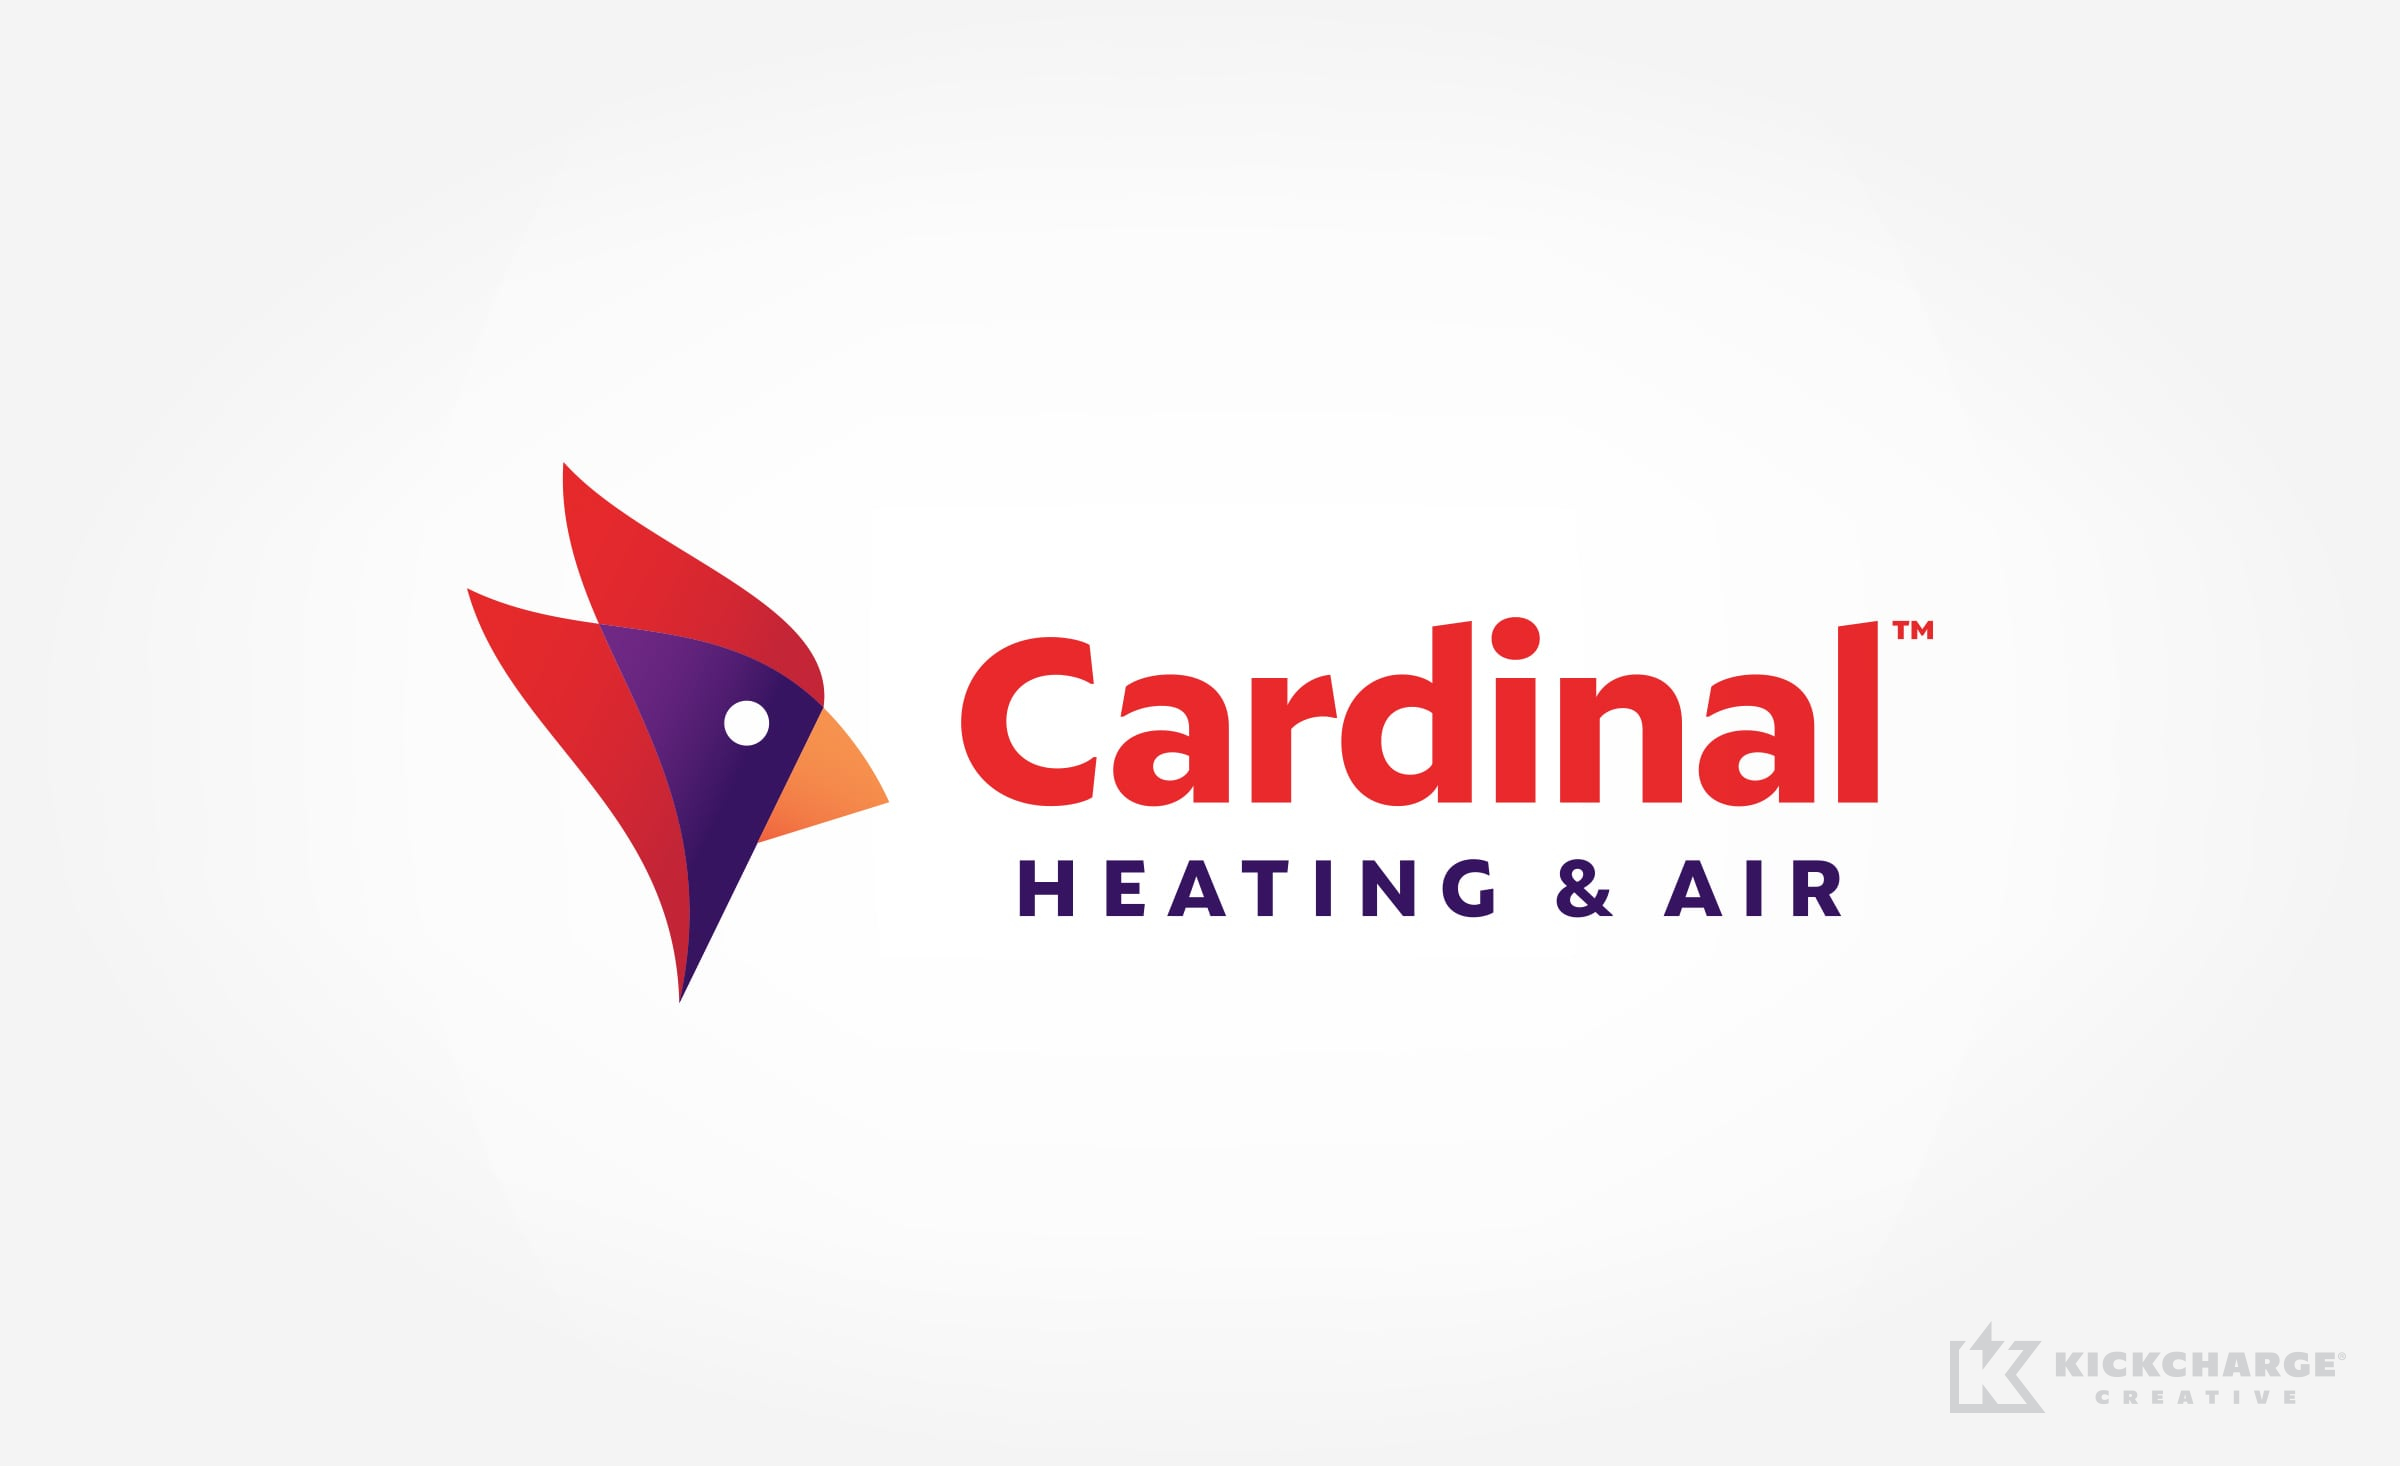 Cardinal Heating & Air